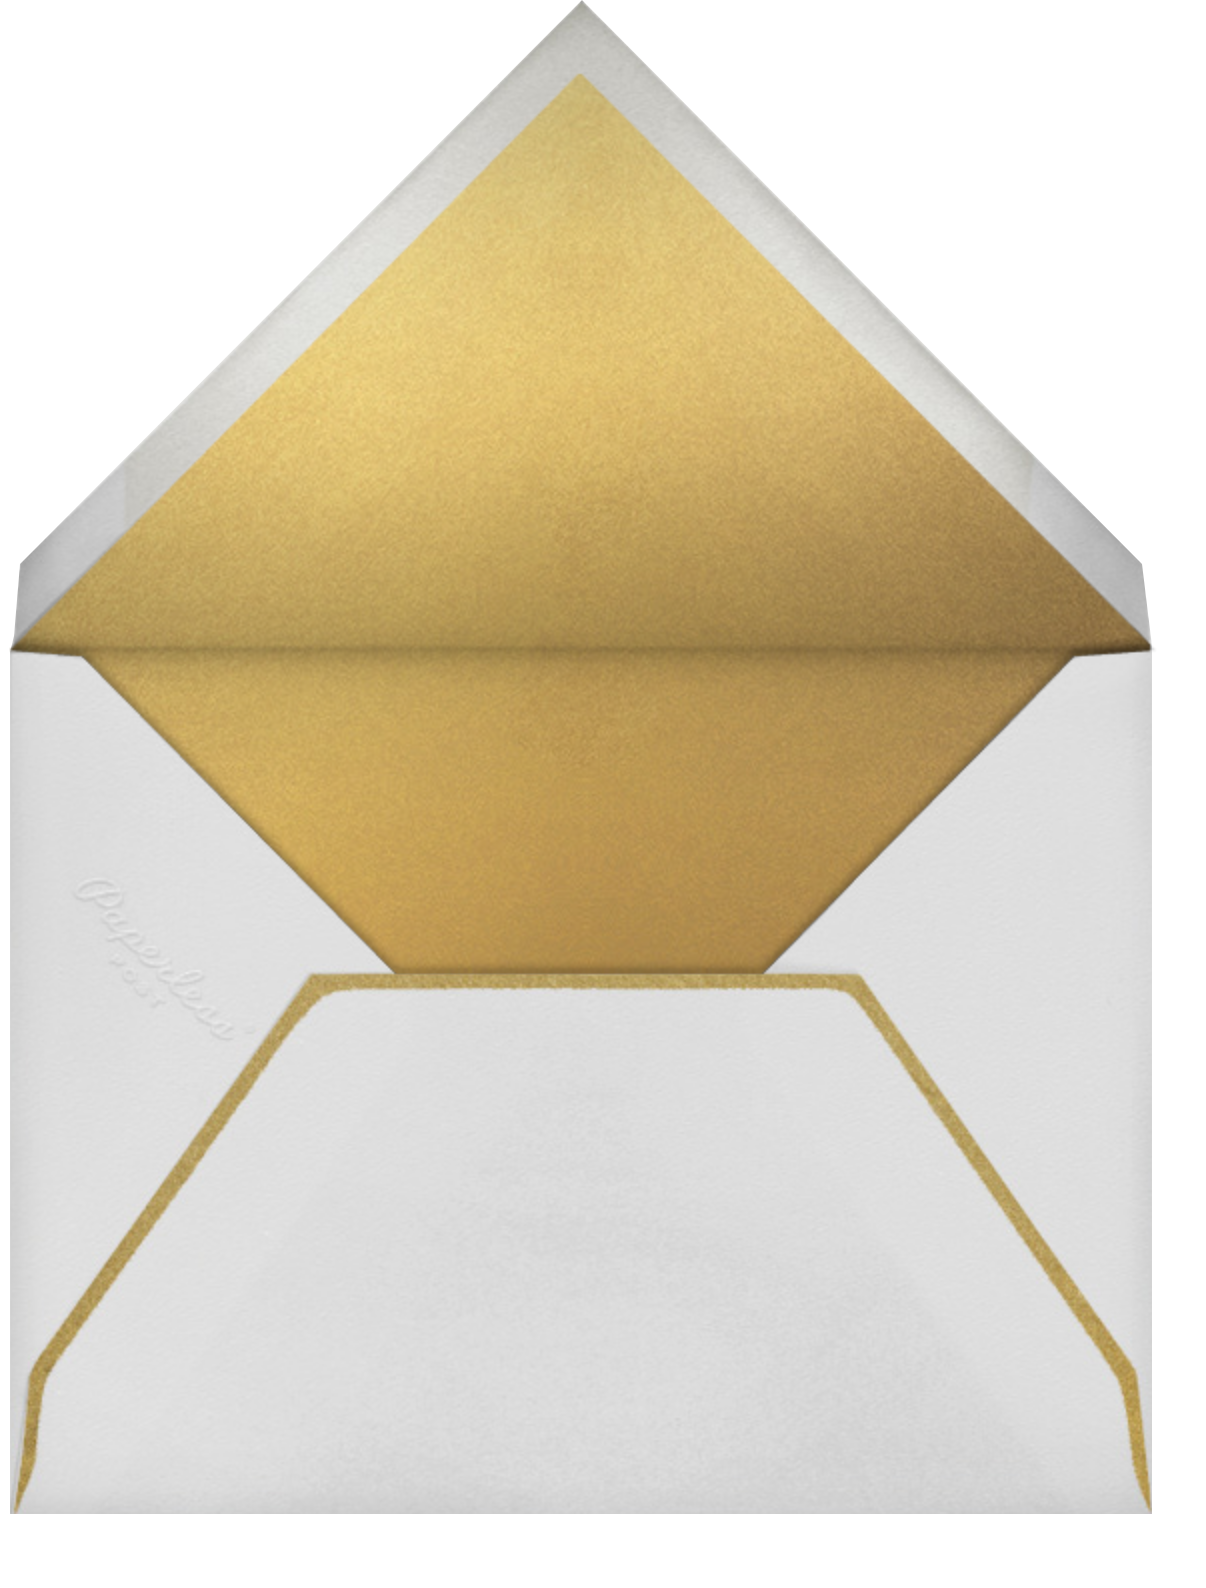 Niwas - Paperless Post - Adult birthday - envelope back